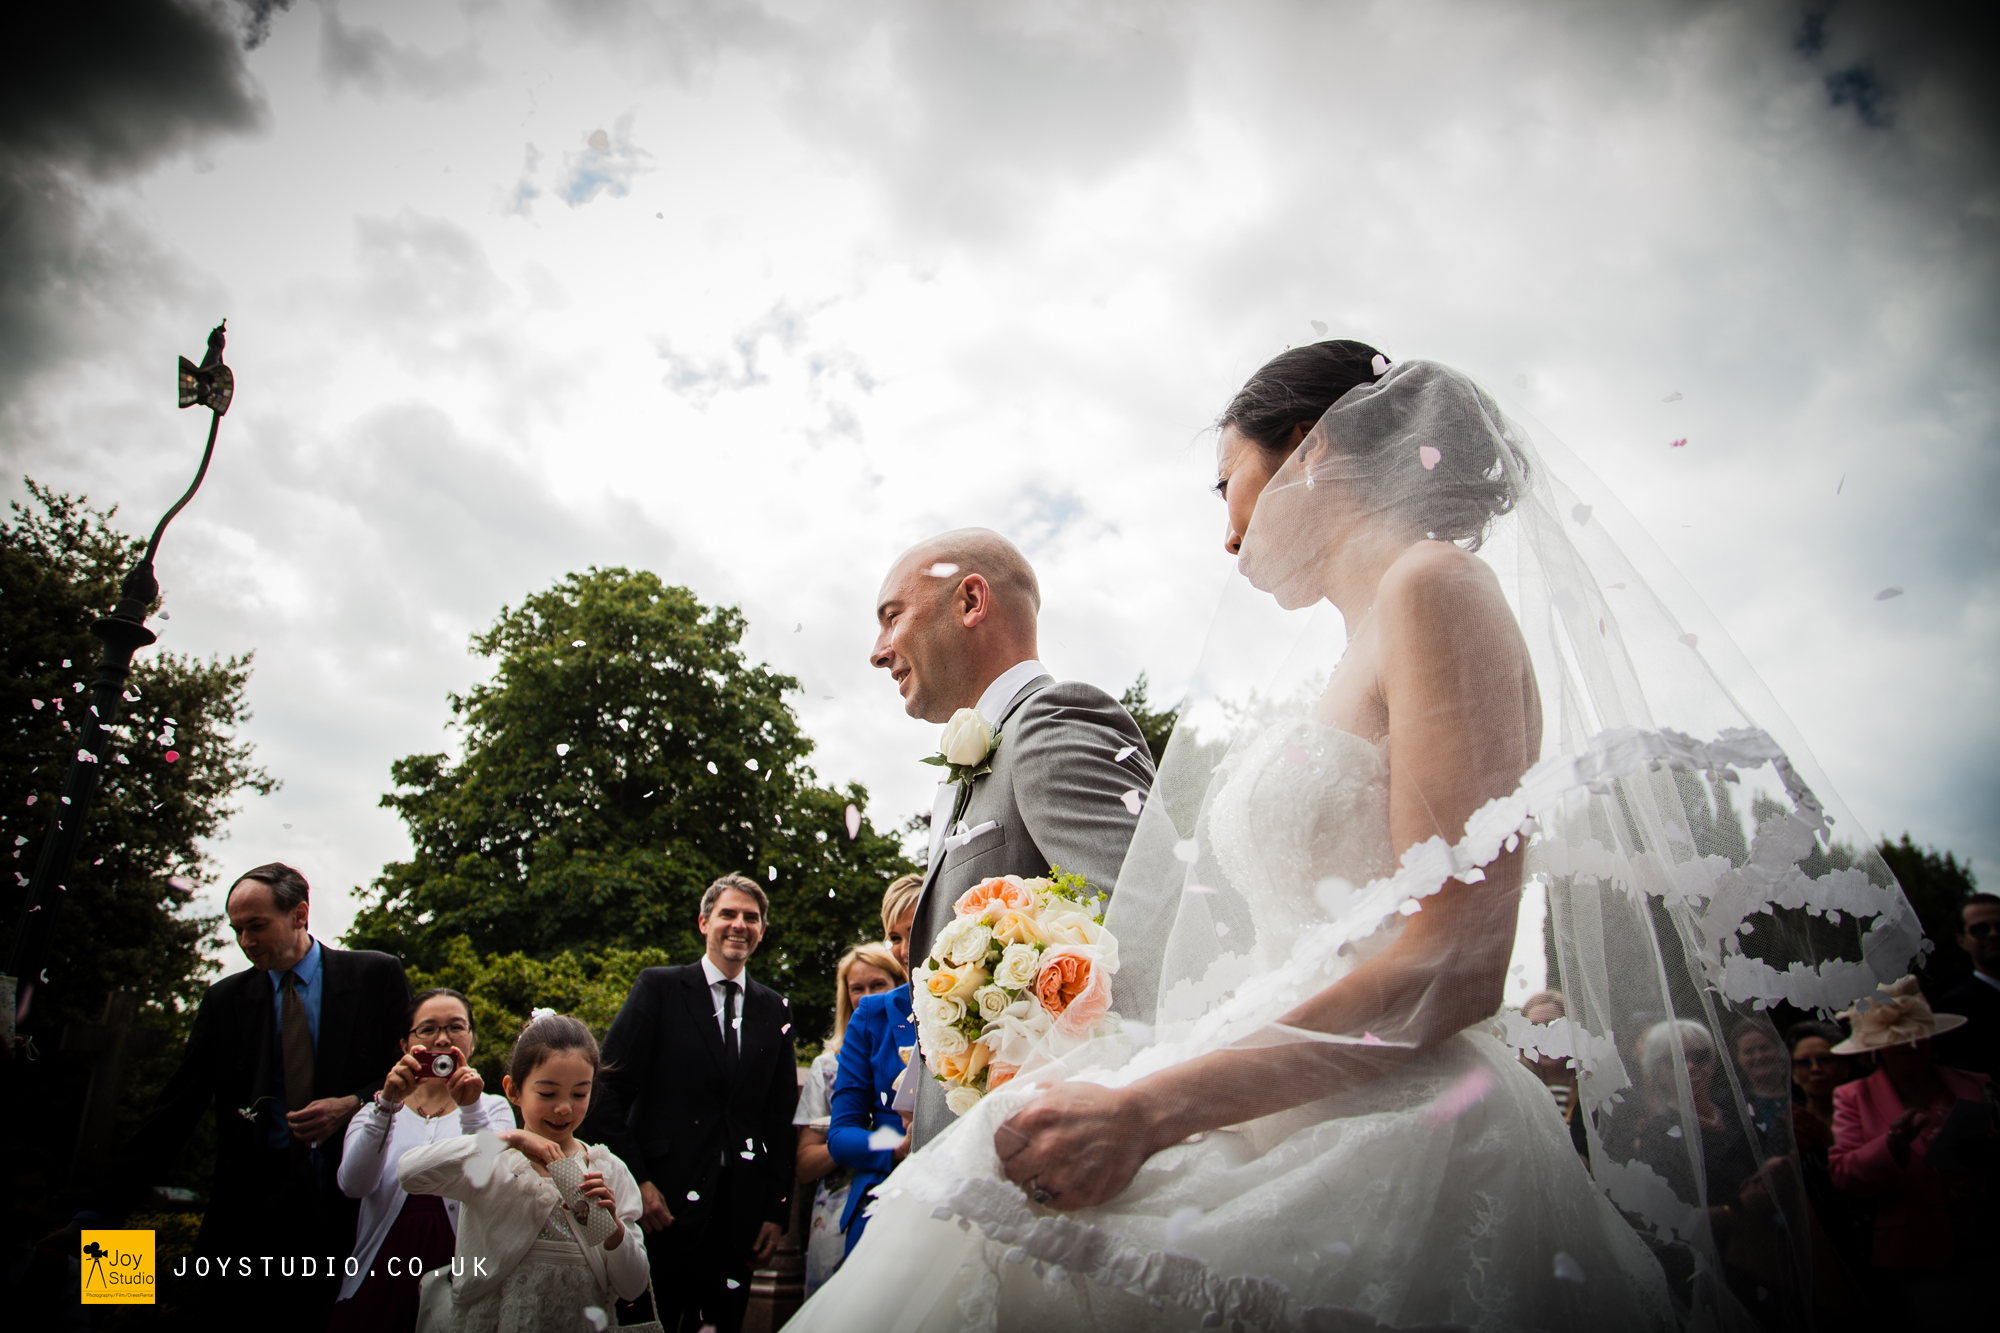 London Wedding Photo By Joy Studio